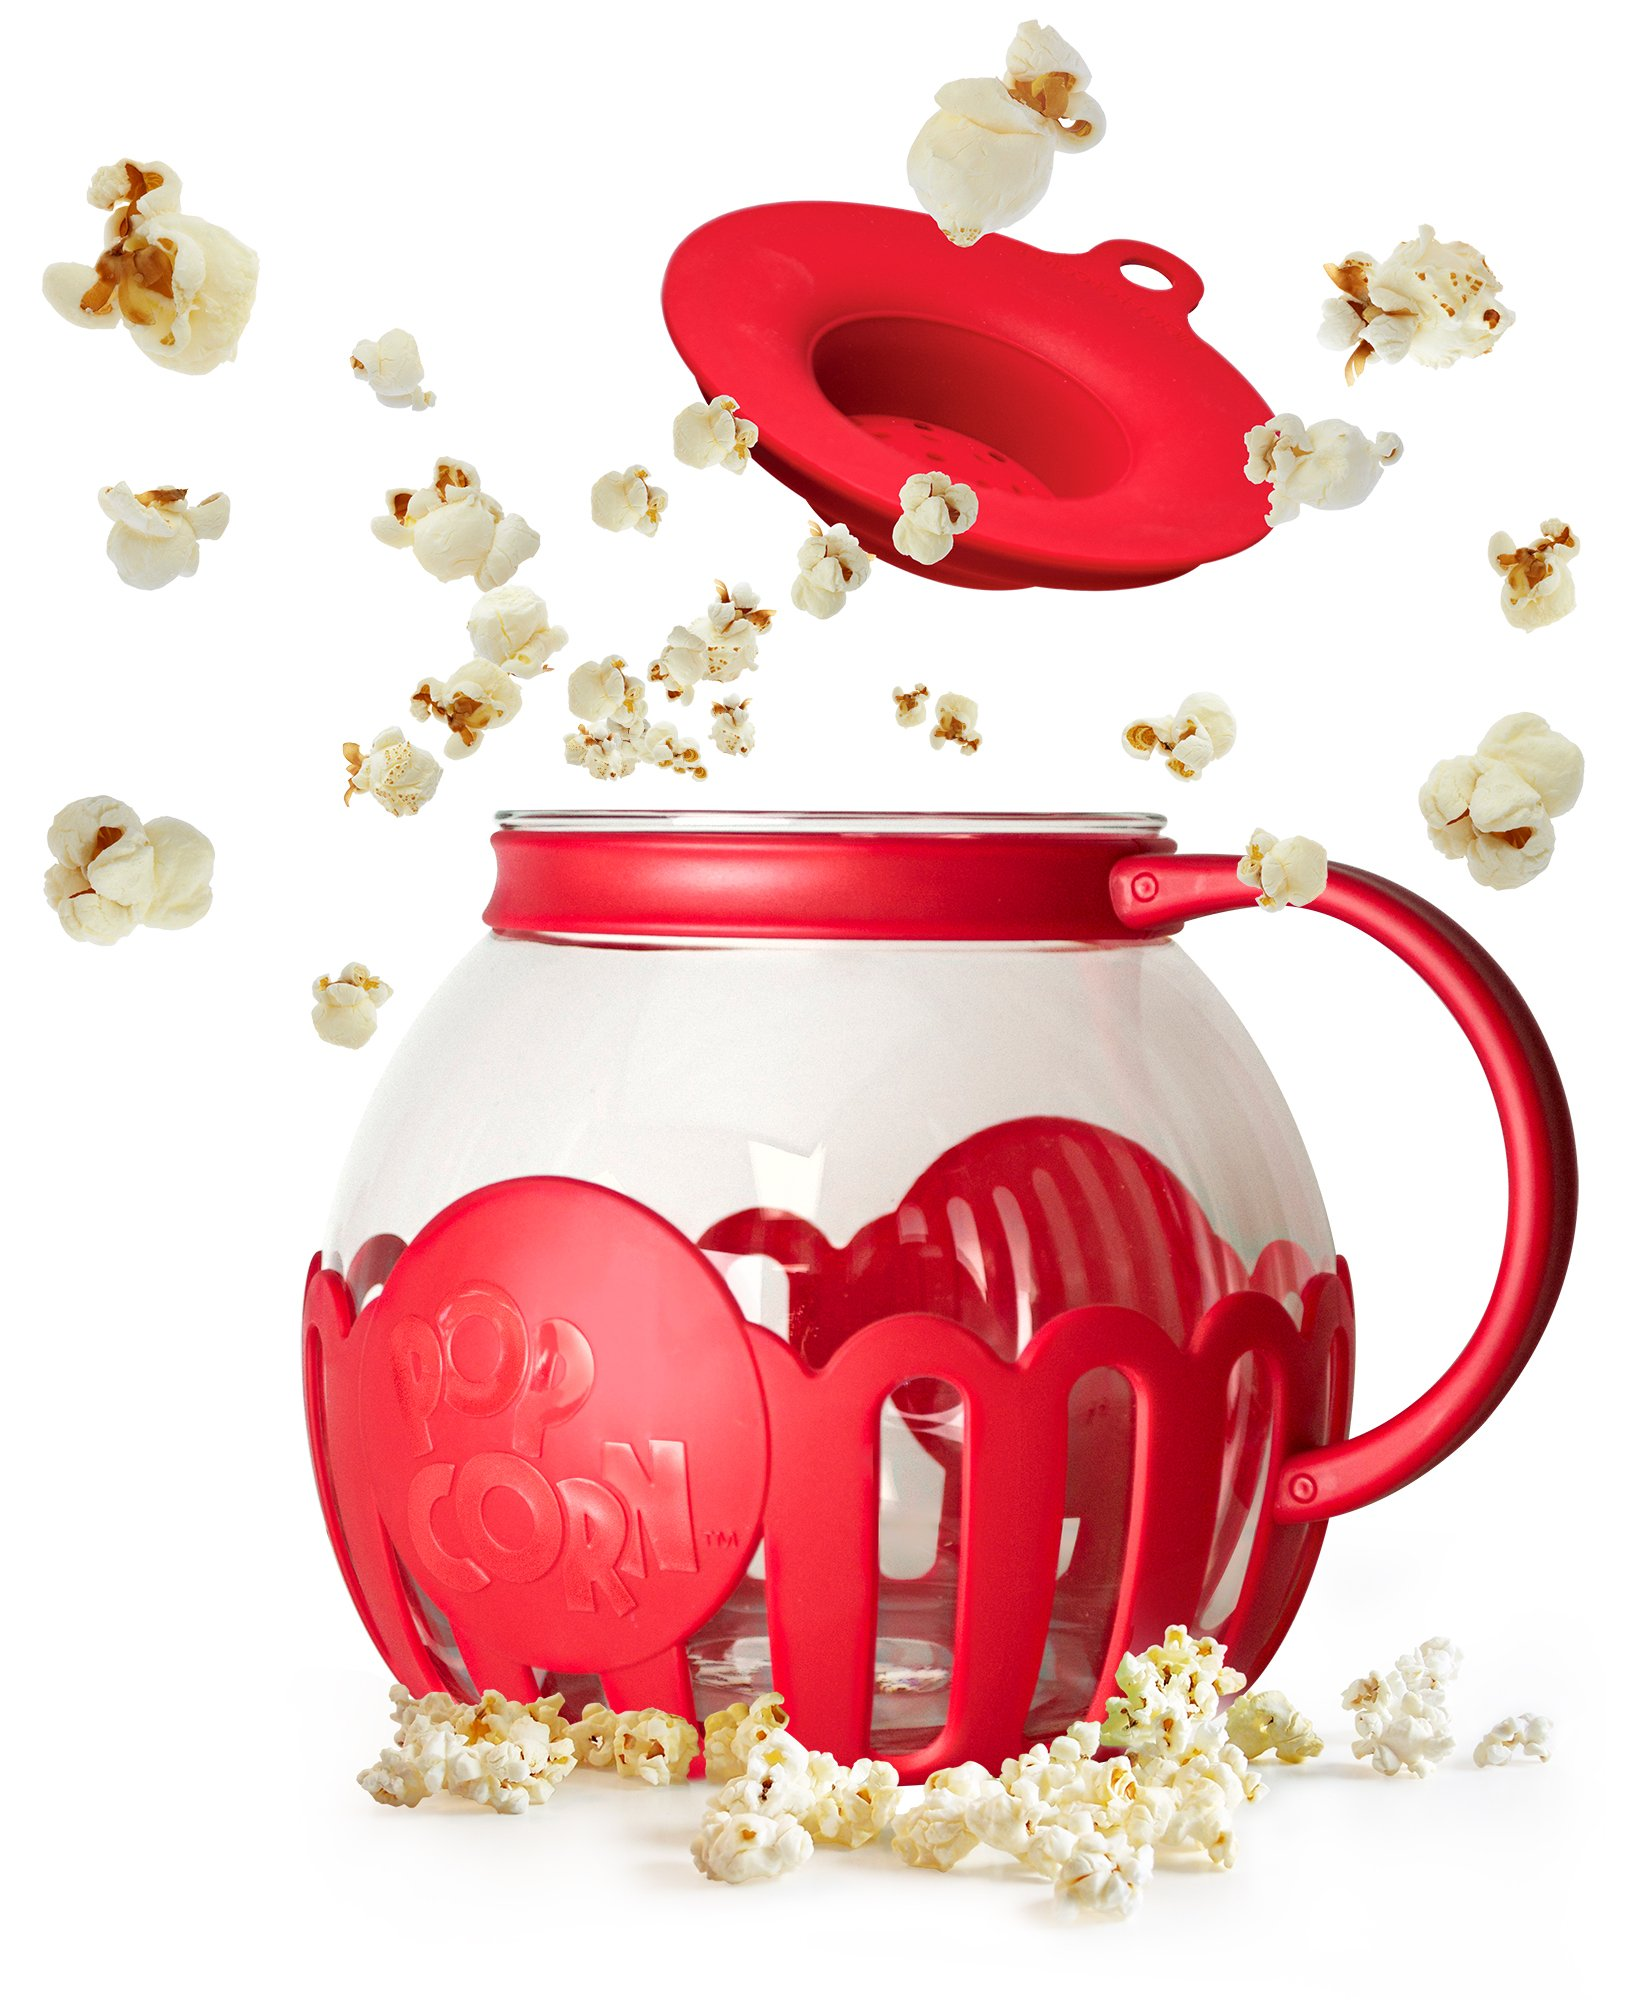 Ecolution Micro-Pop Microwave Popcorn Popper 3QT - Temperature Safe Glass w/Multi Purpose Lid, Family Size, Red